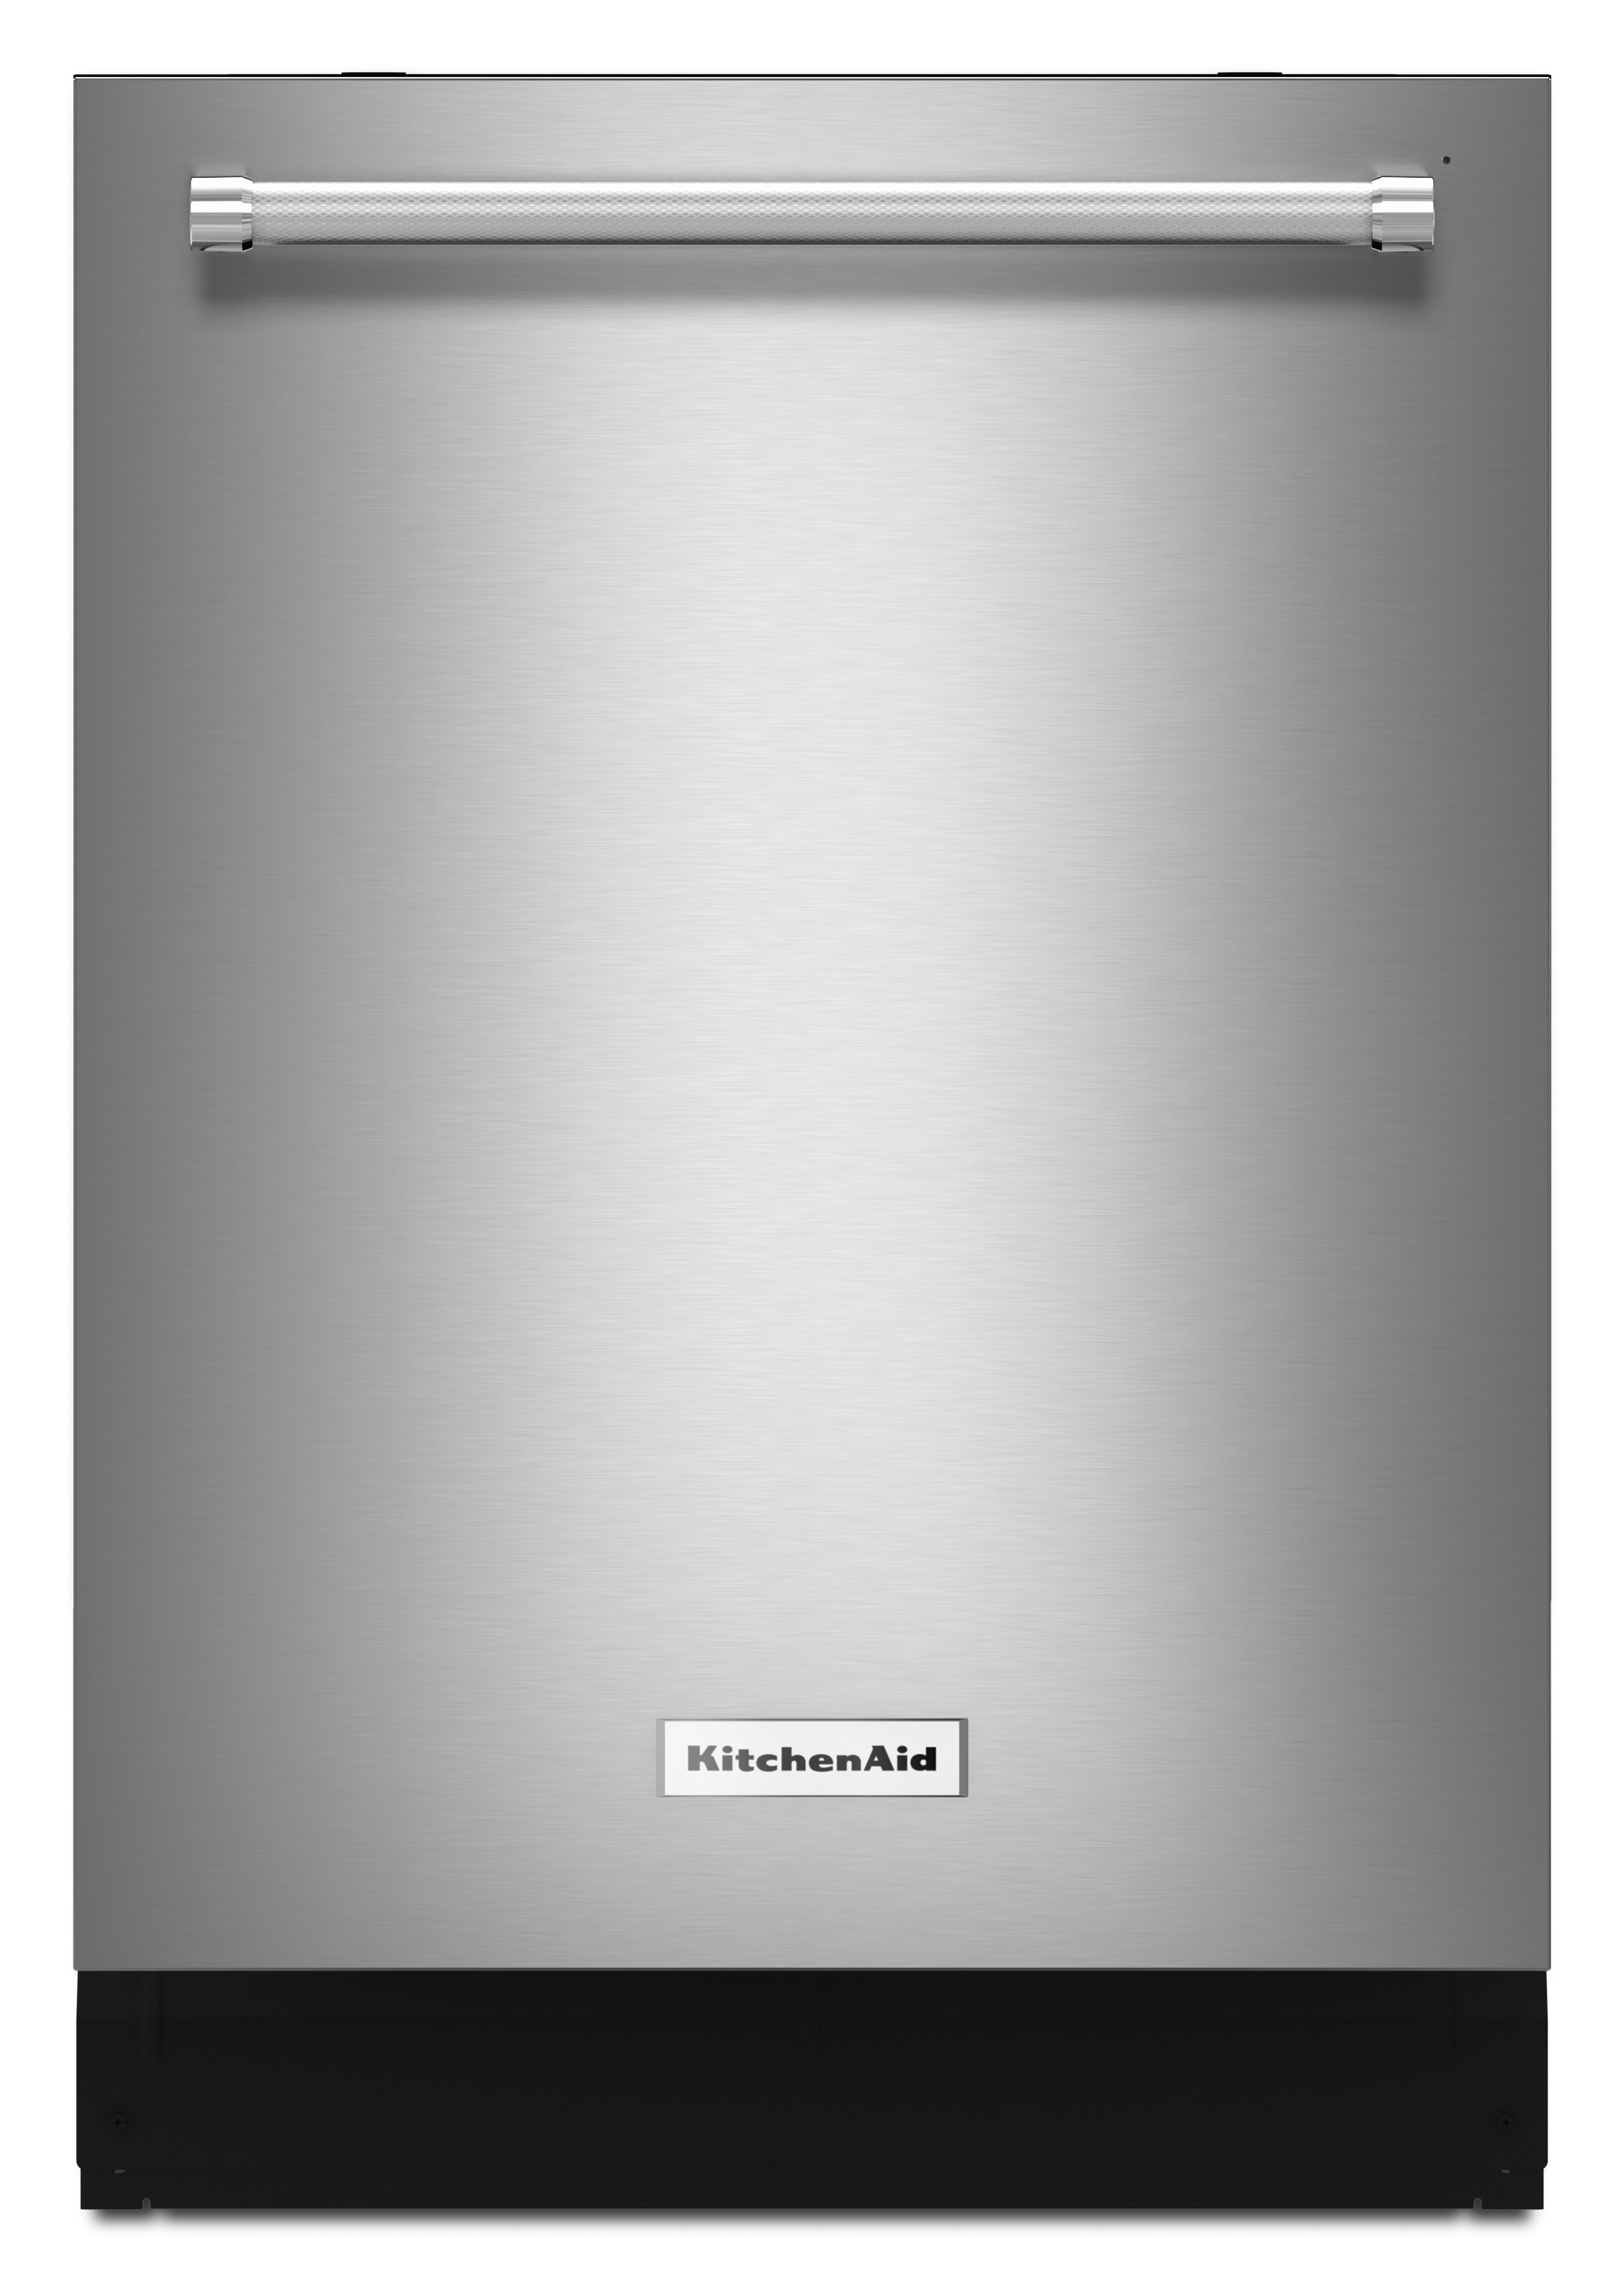 KitchenAid KDTM404ESS 24 Top Control Built-In Dishwasher - Stainless Steel